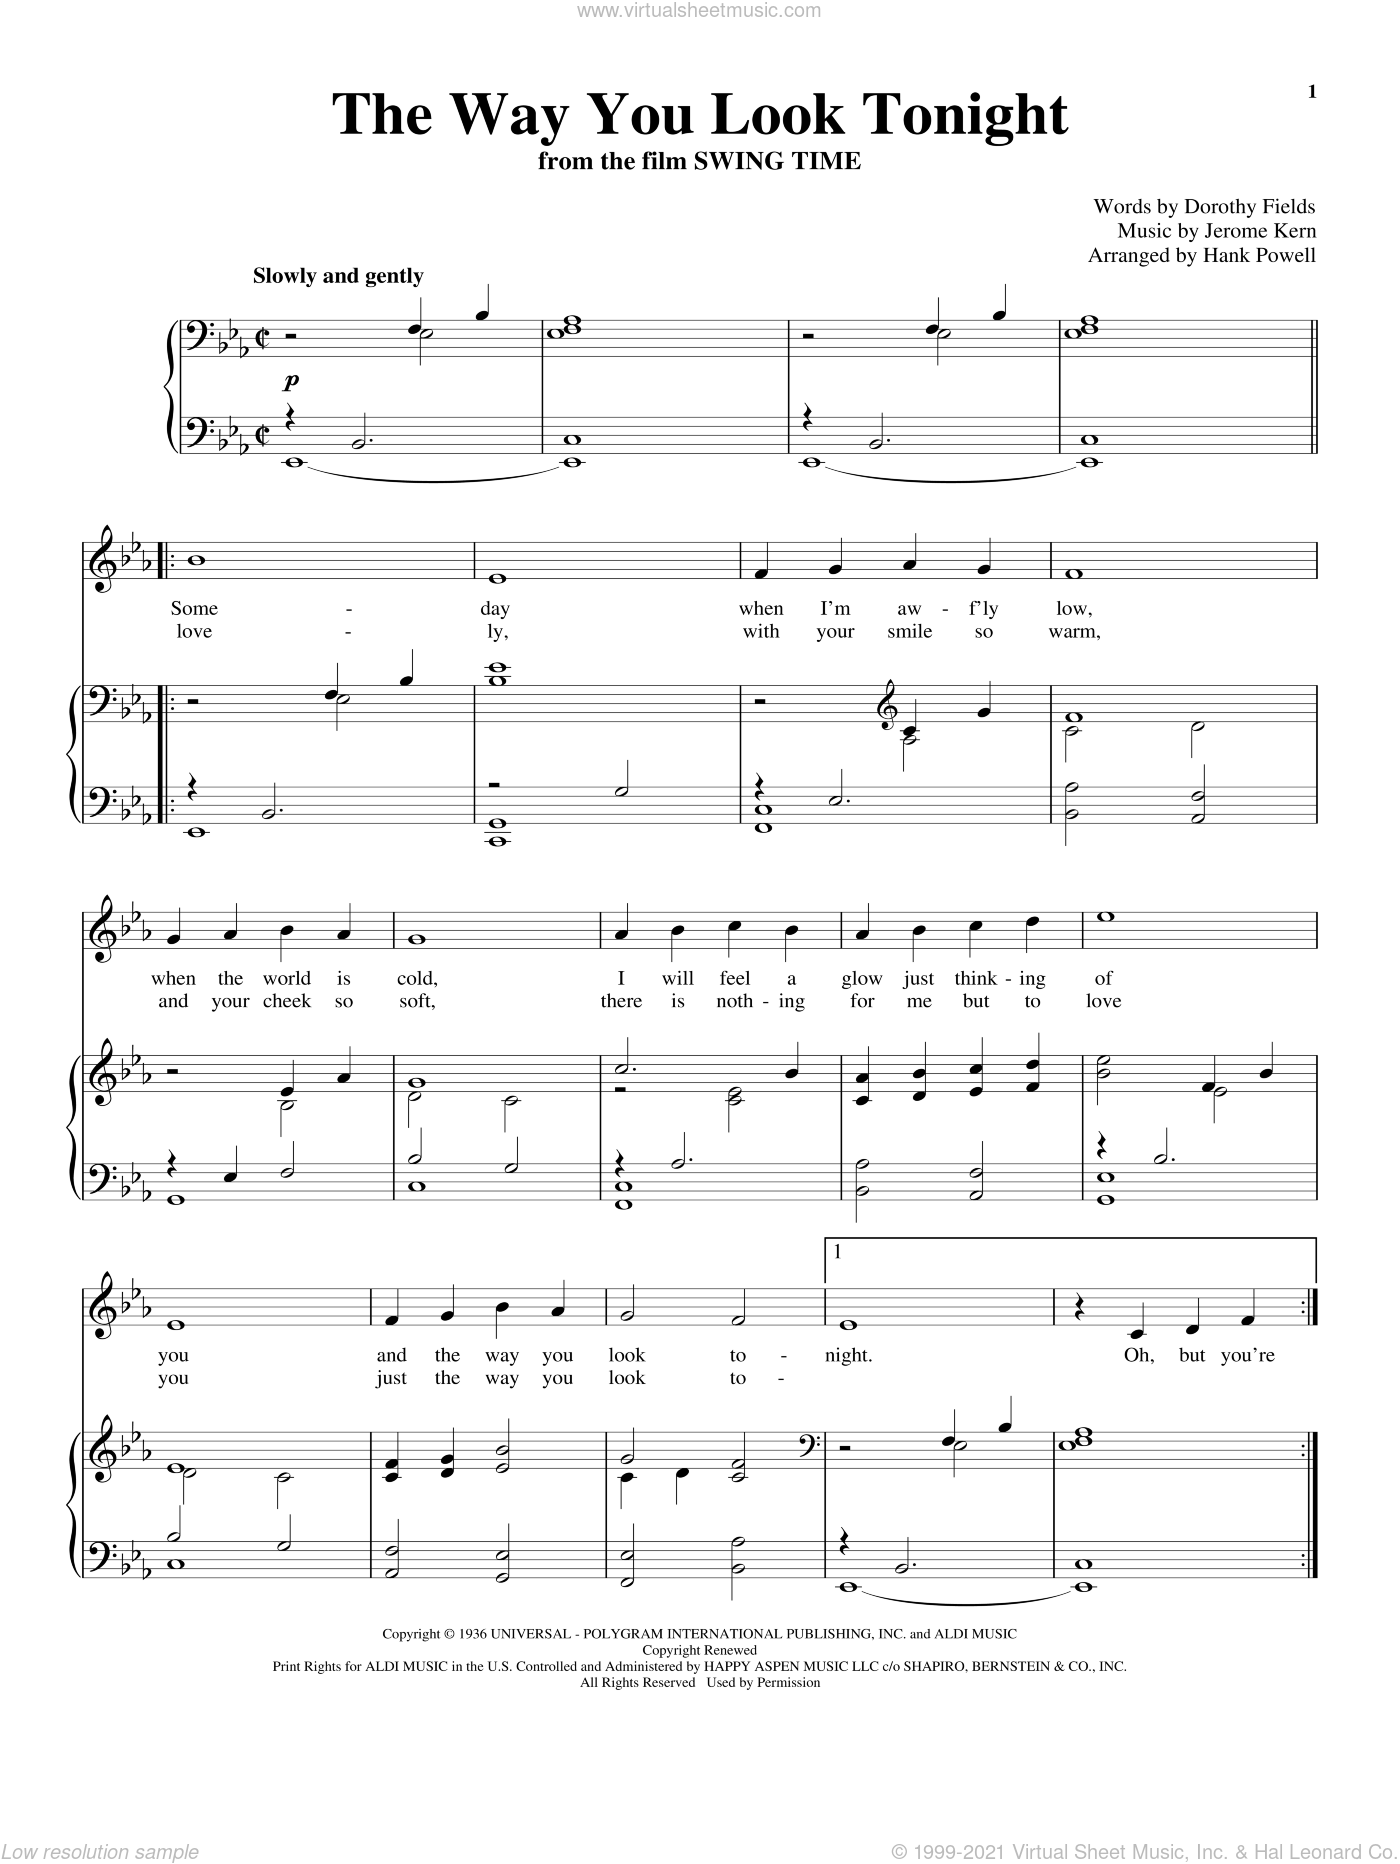 The Way You Look Tonight sheet music for voice and piano by Jerome Kern and Dorothy Fields, wedding score, intermediate skill level